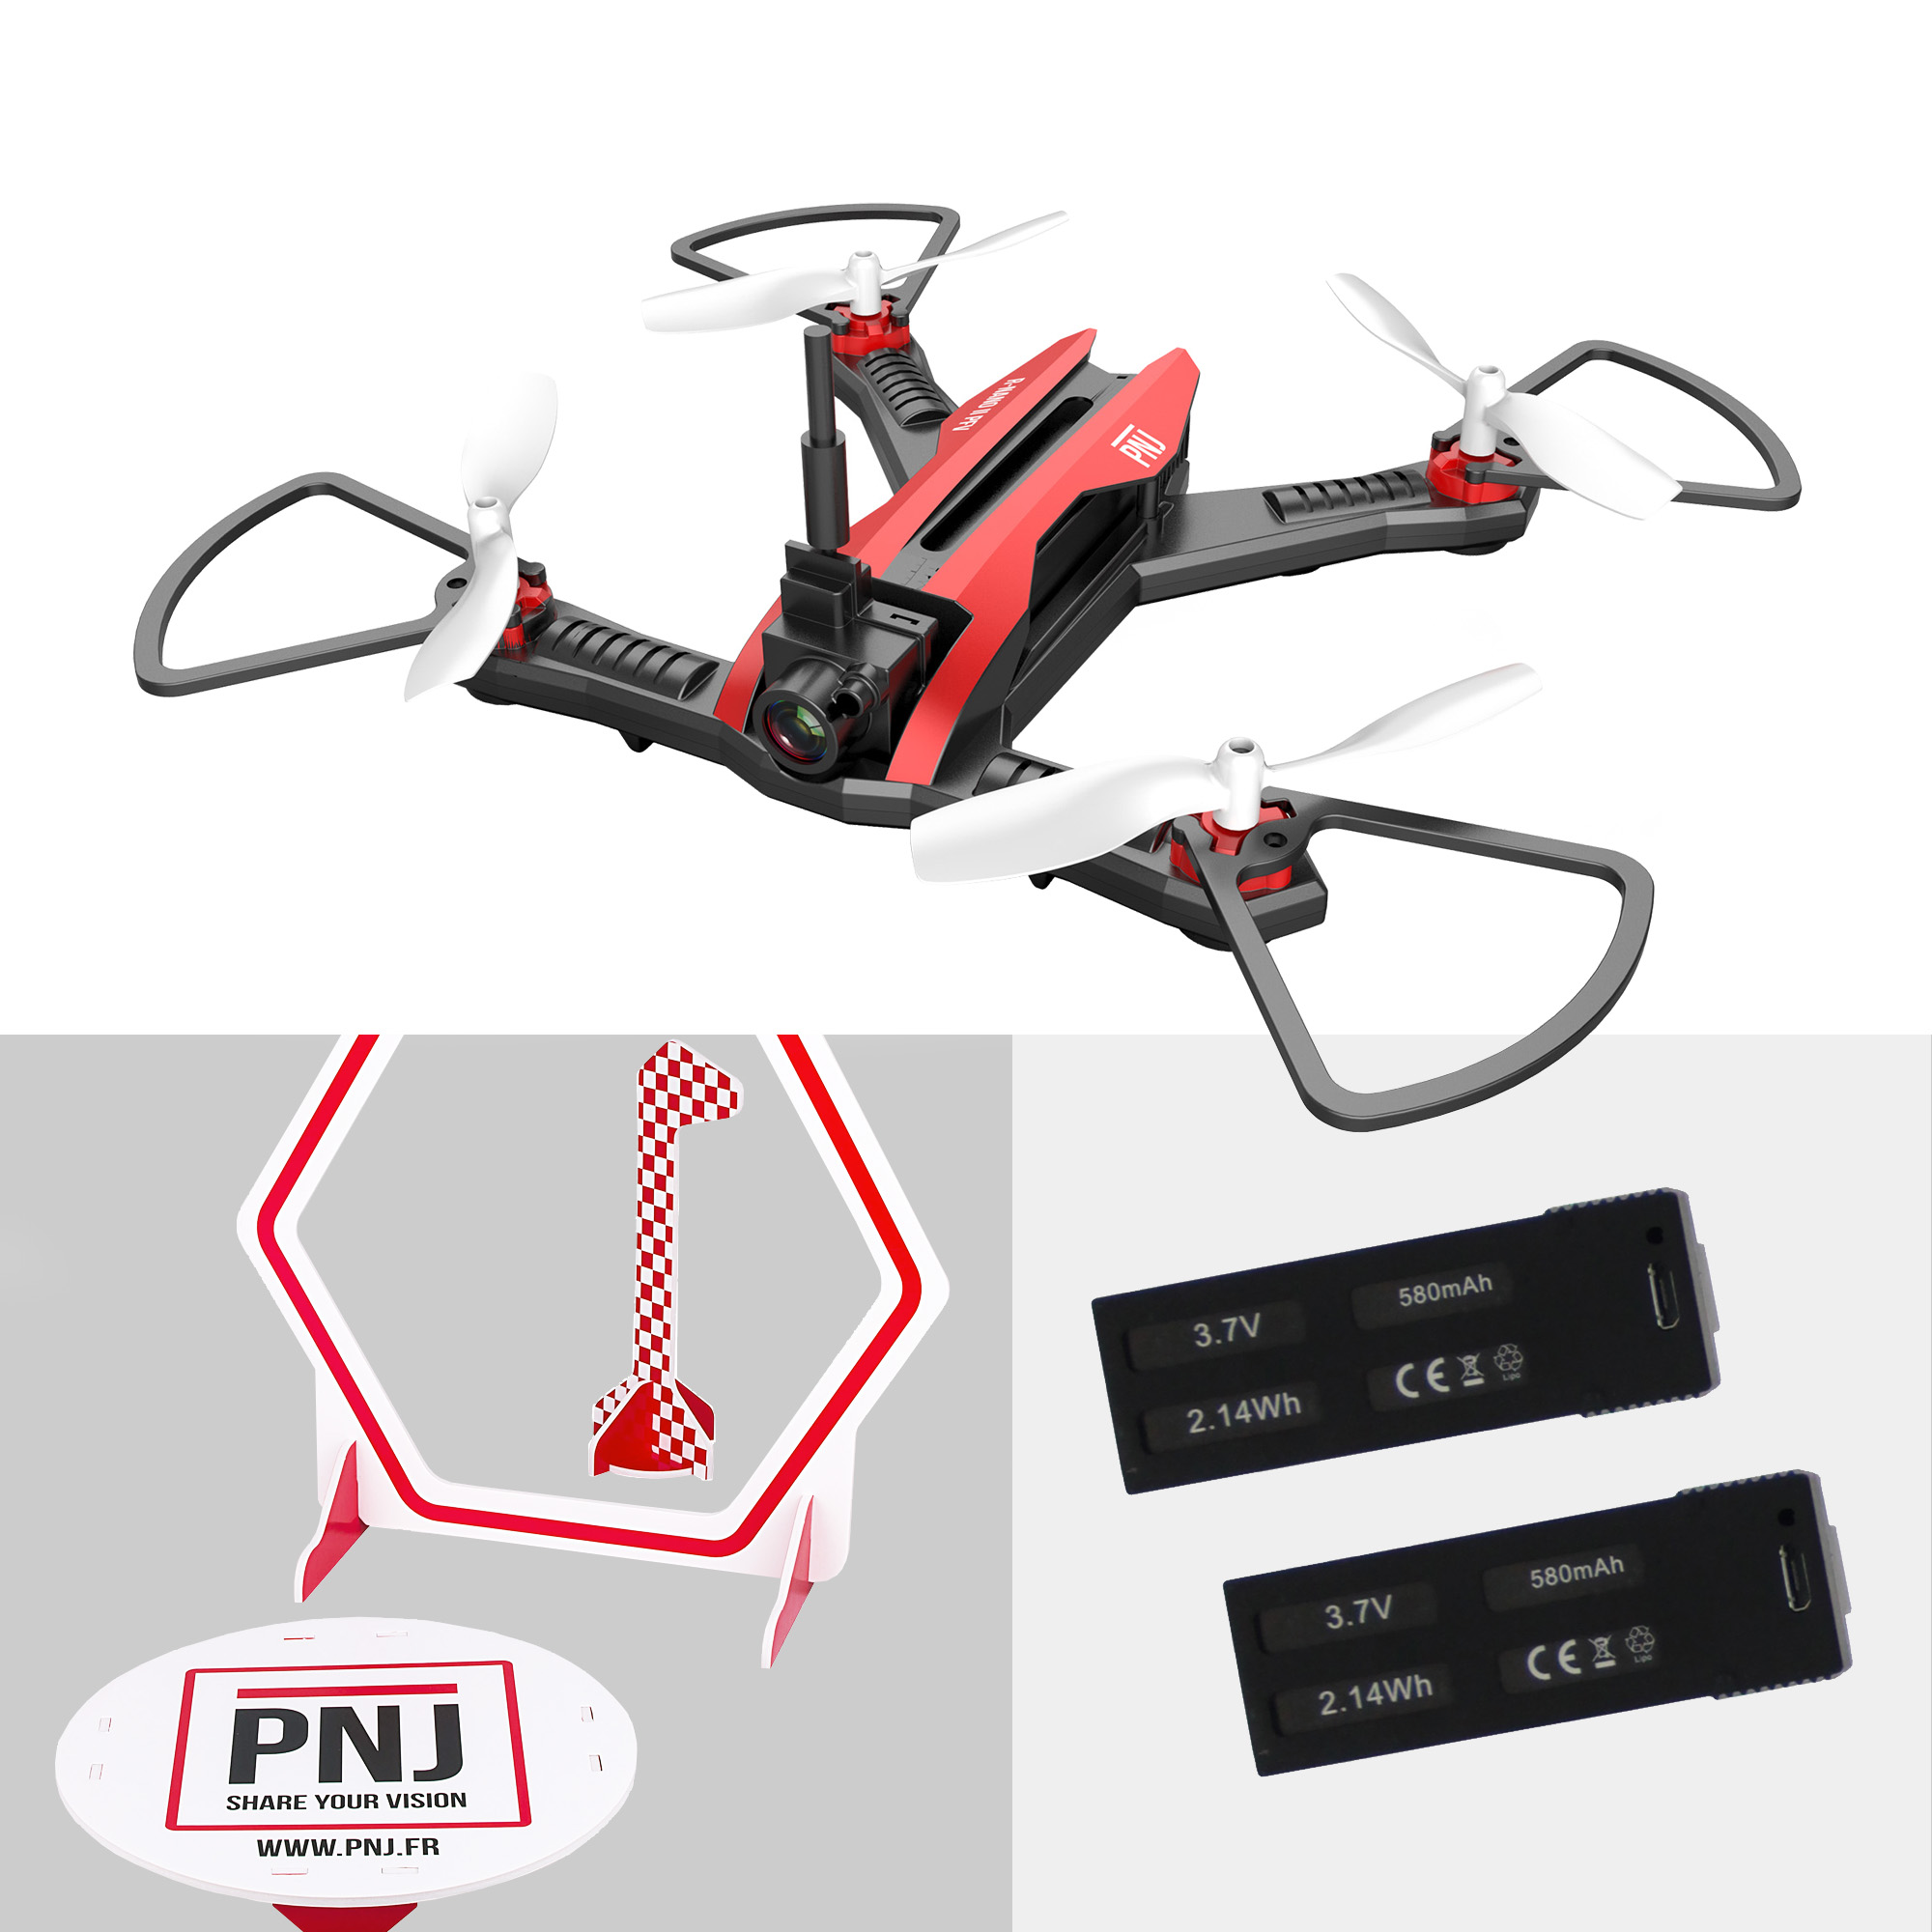 Included in the pack : 1x R NANO II FPV…